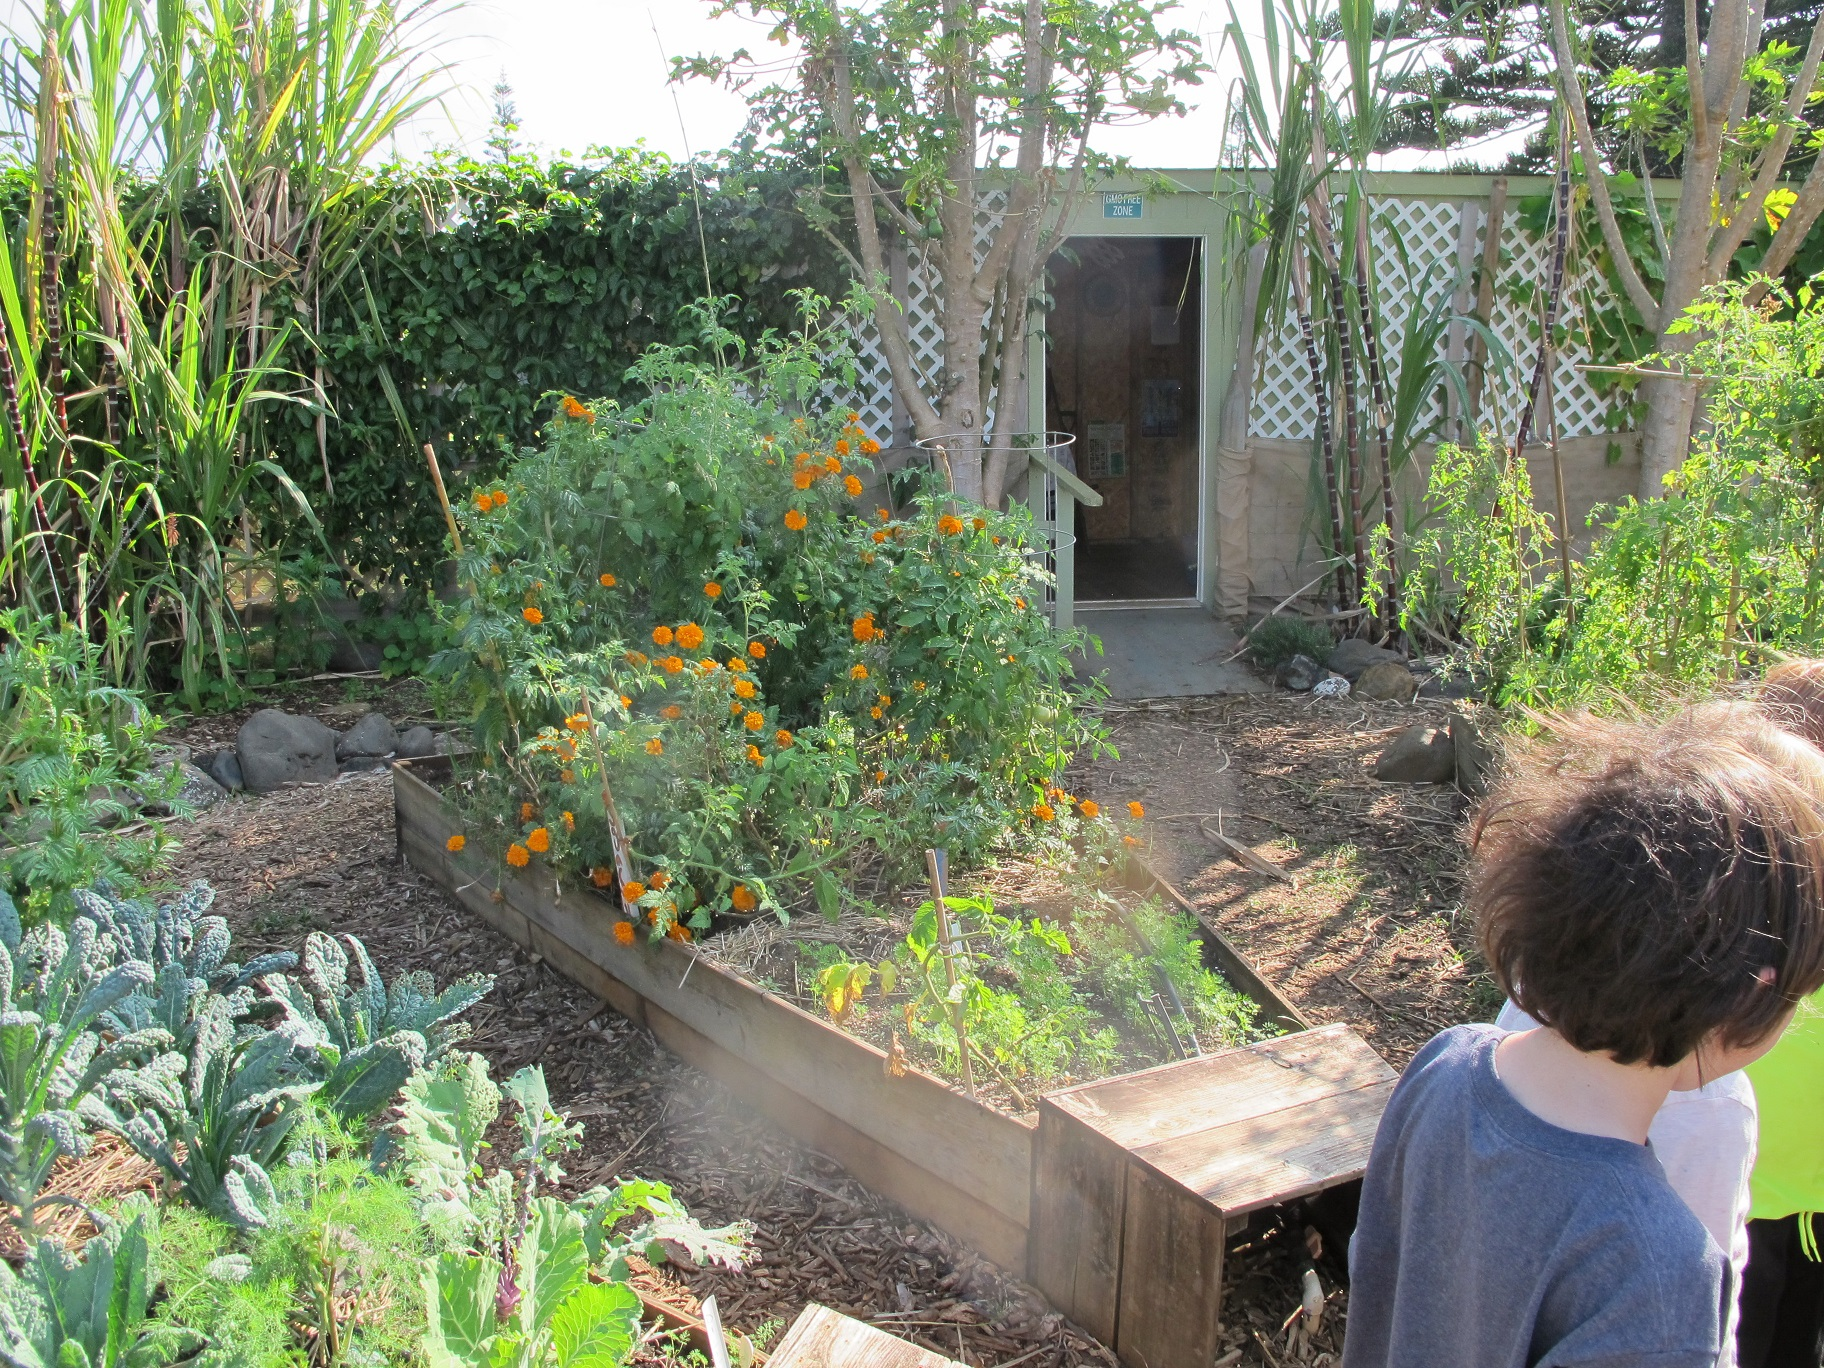 Children's Haiku Garden , a site with poetry and illustrations by